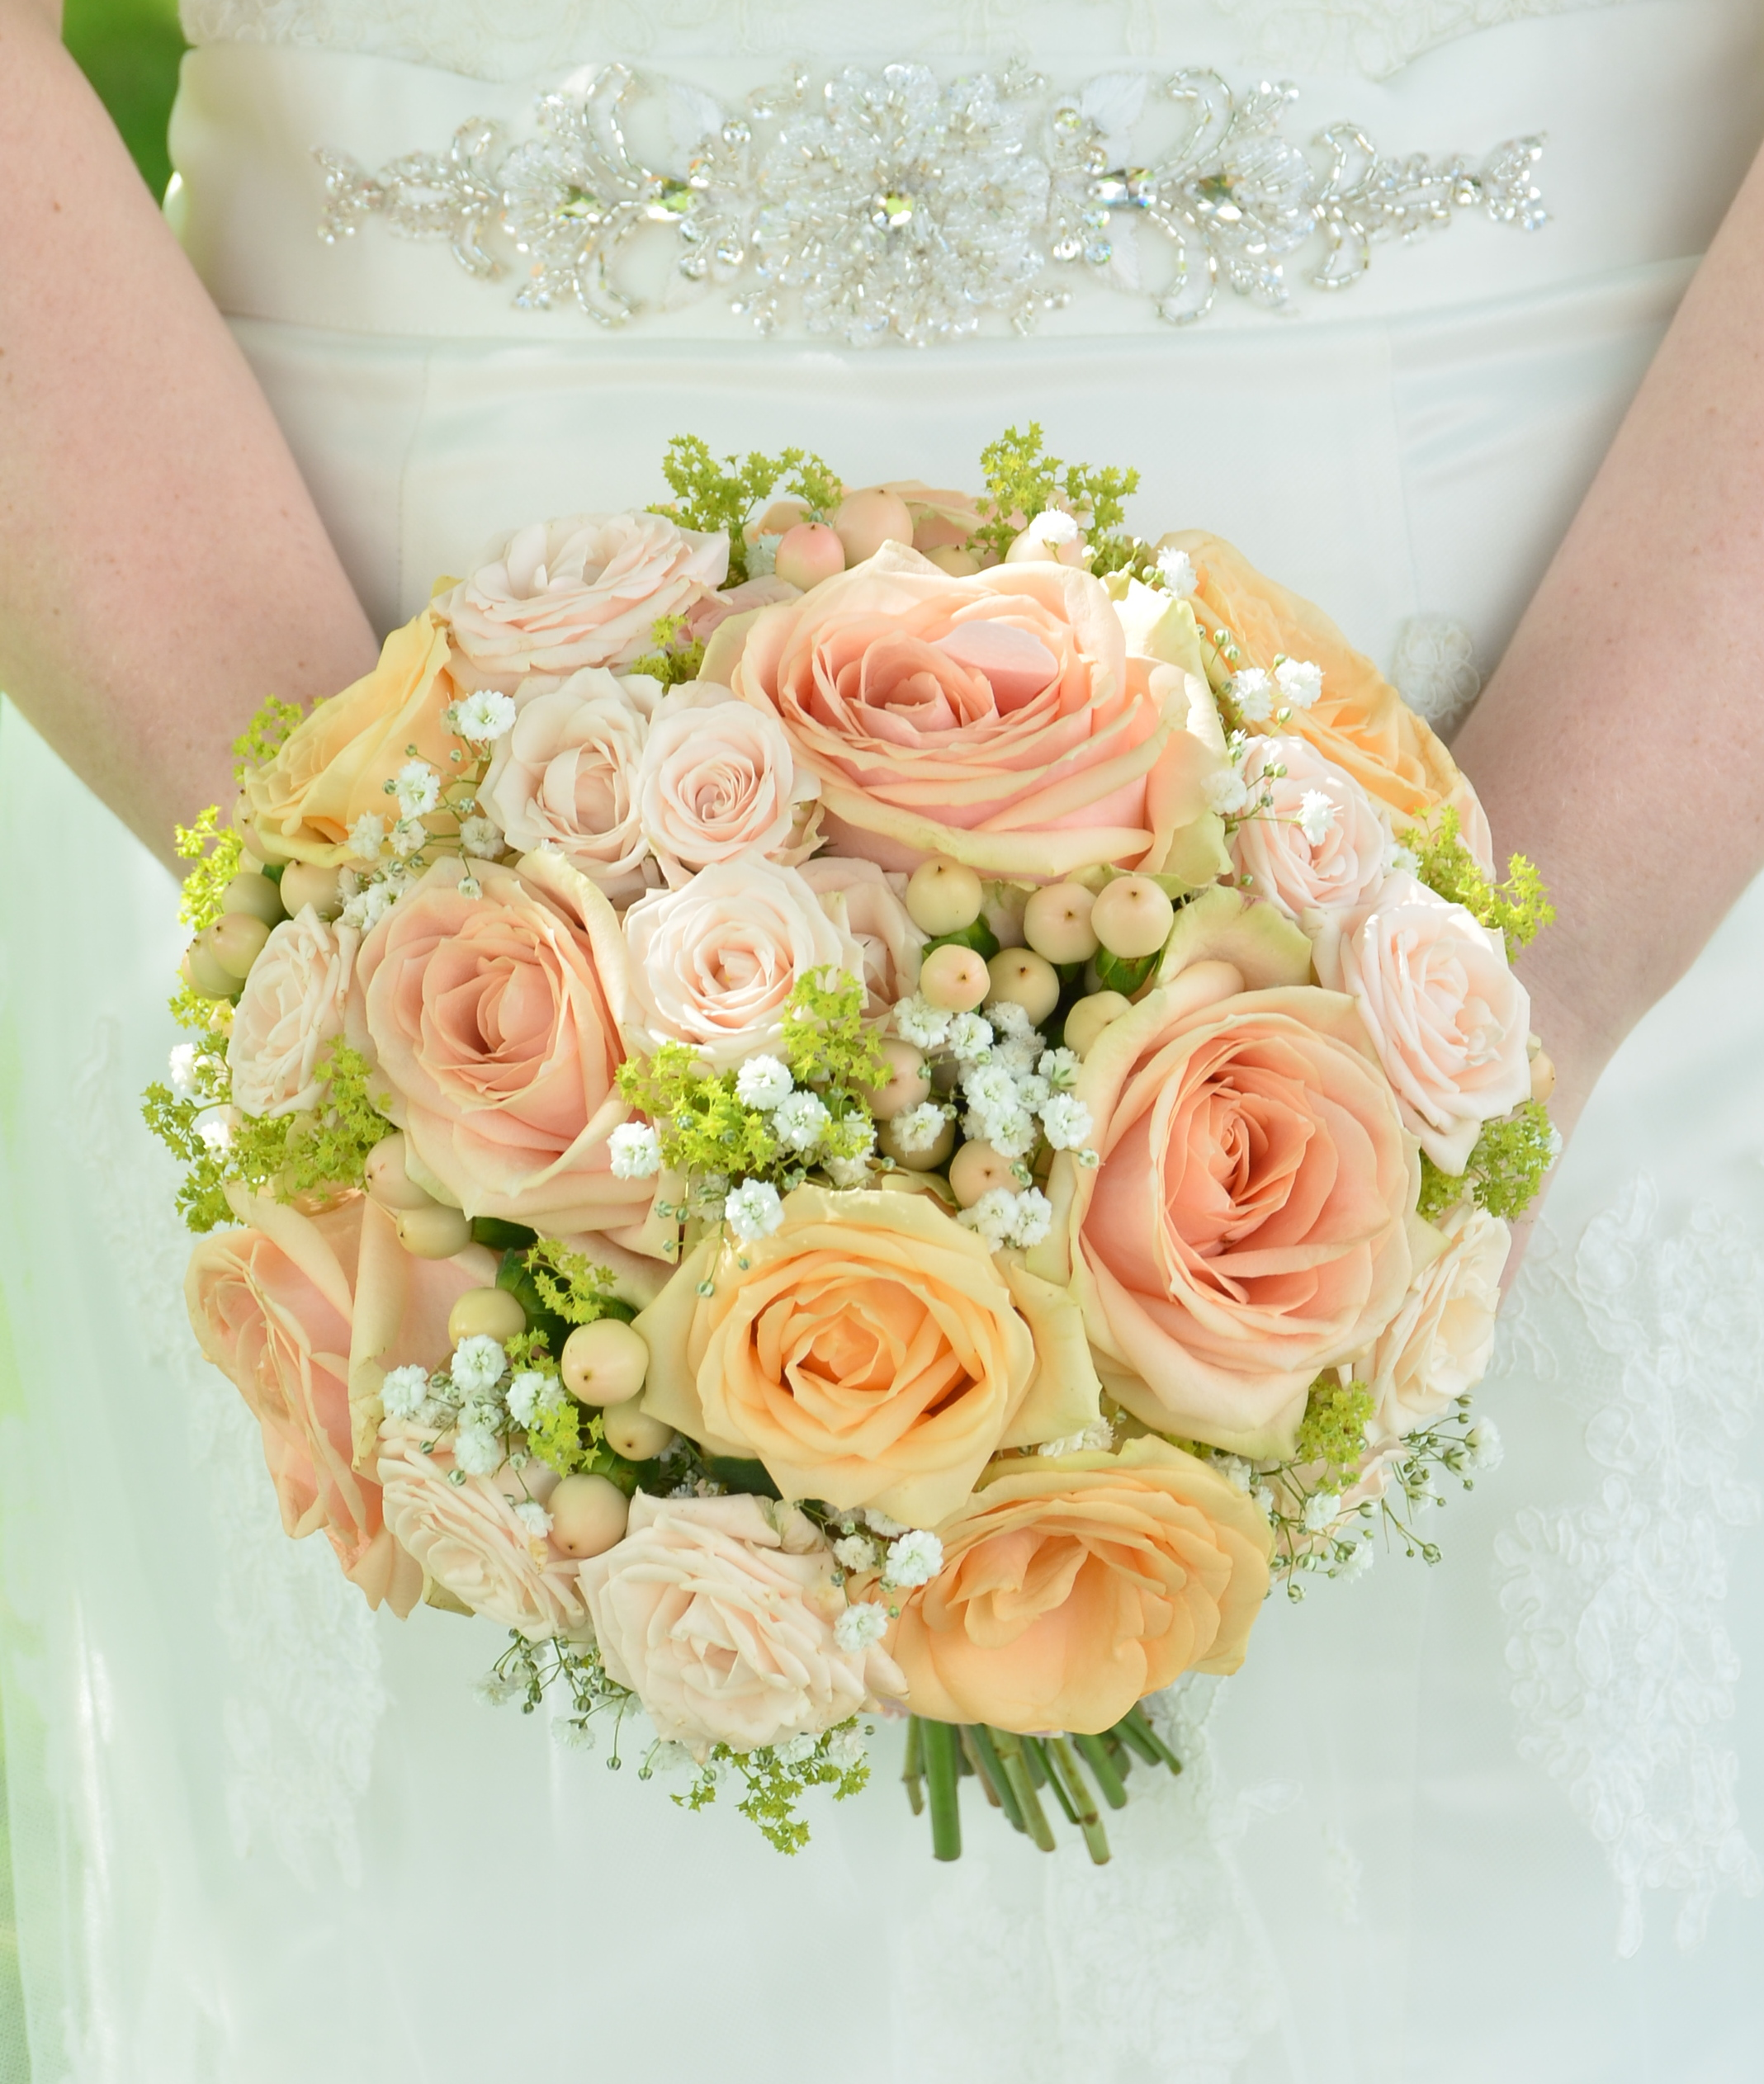 Free photo: Bridal bouquet - Wedding, Flowers, Bride - Free Download ...